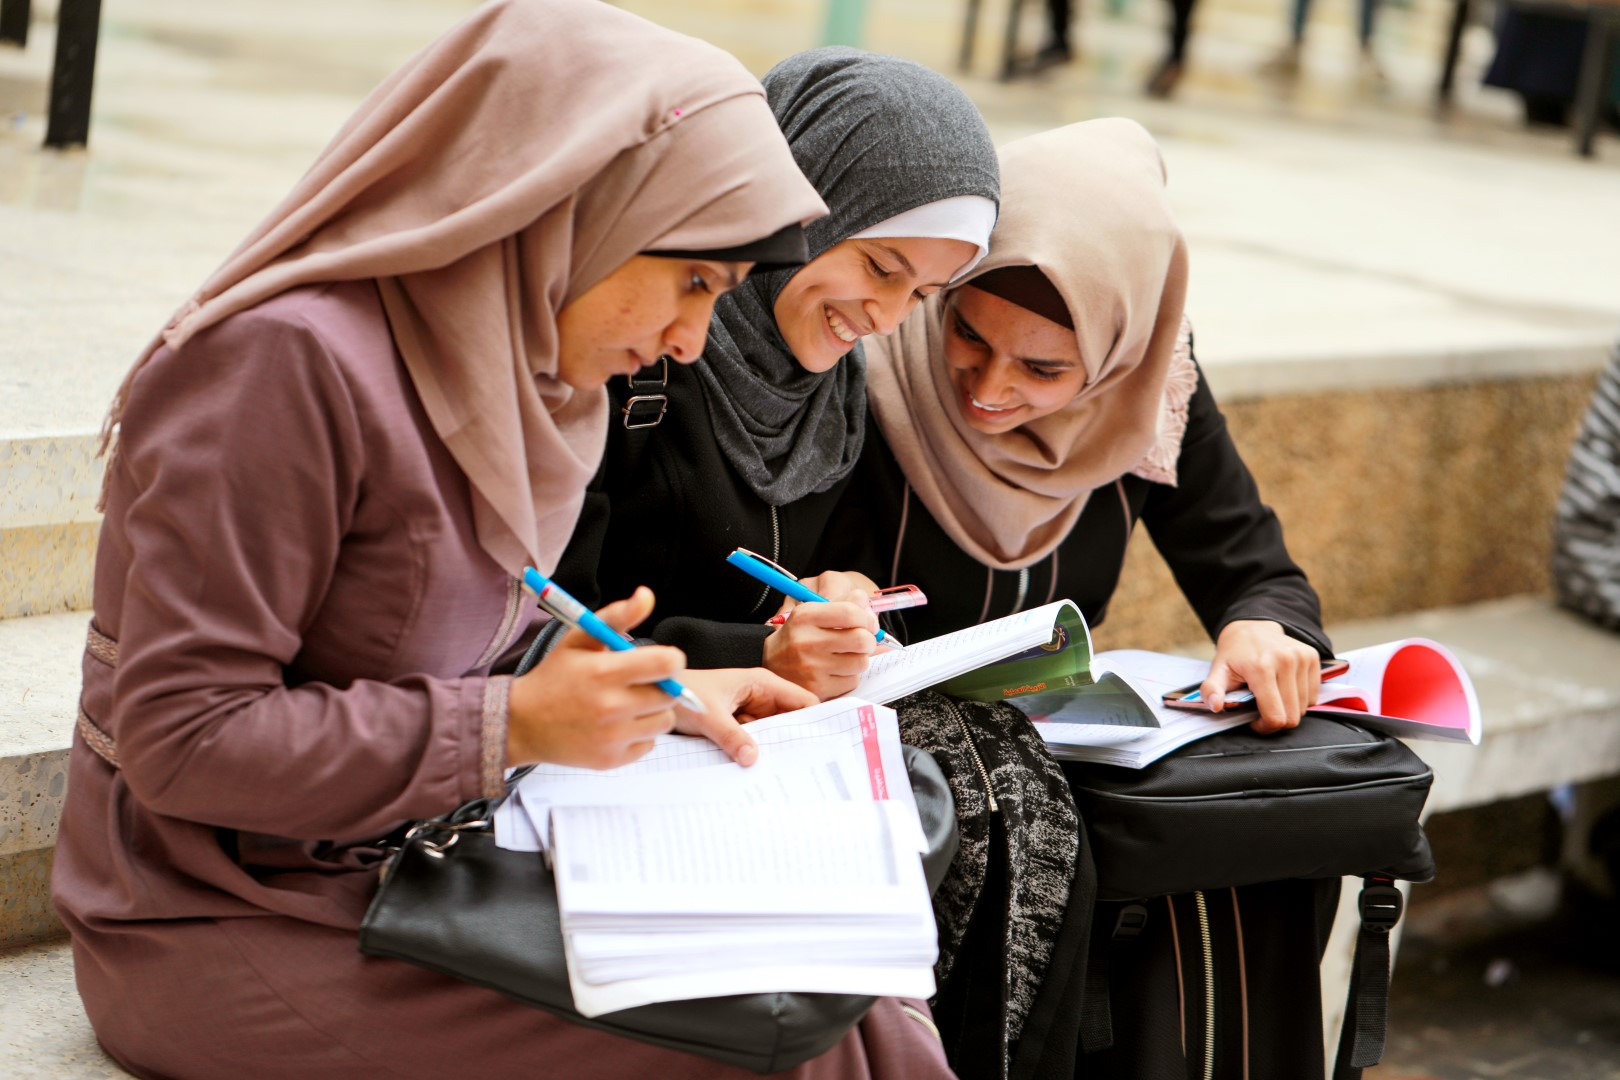 Female students discussing over books on a university campus in Gaza